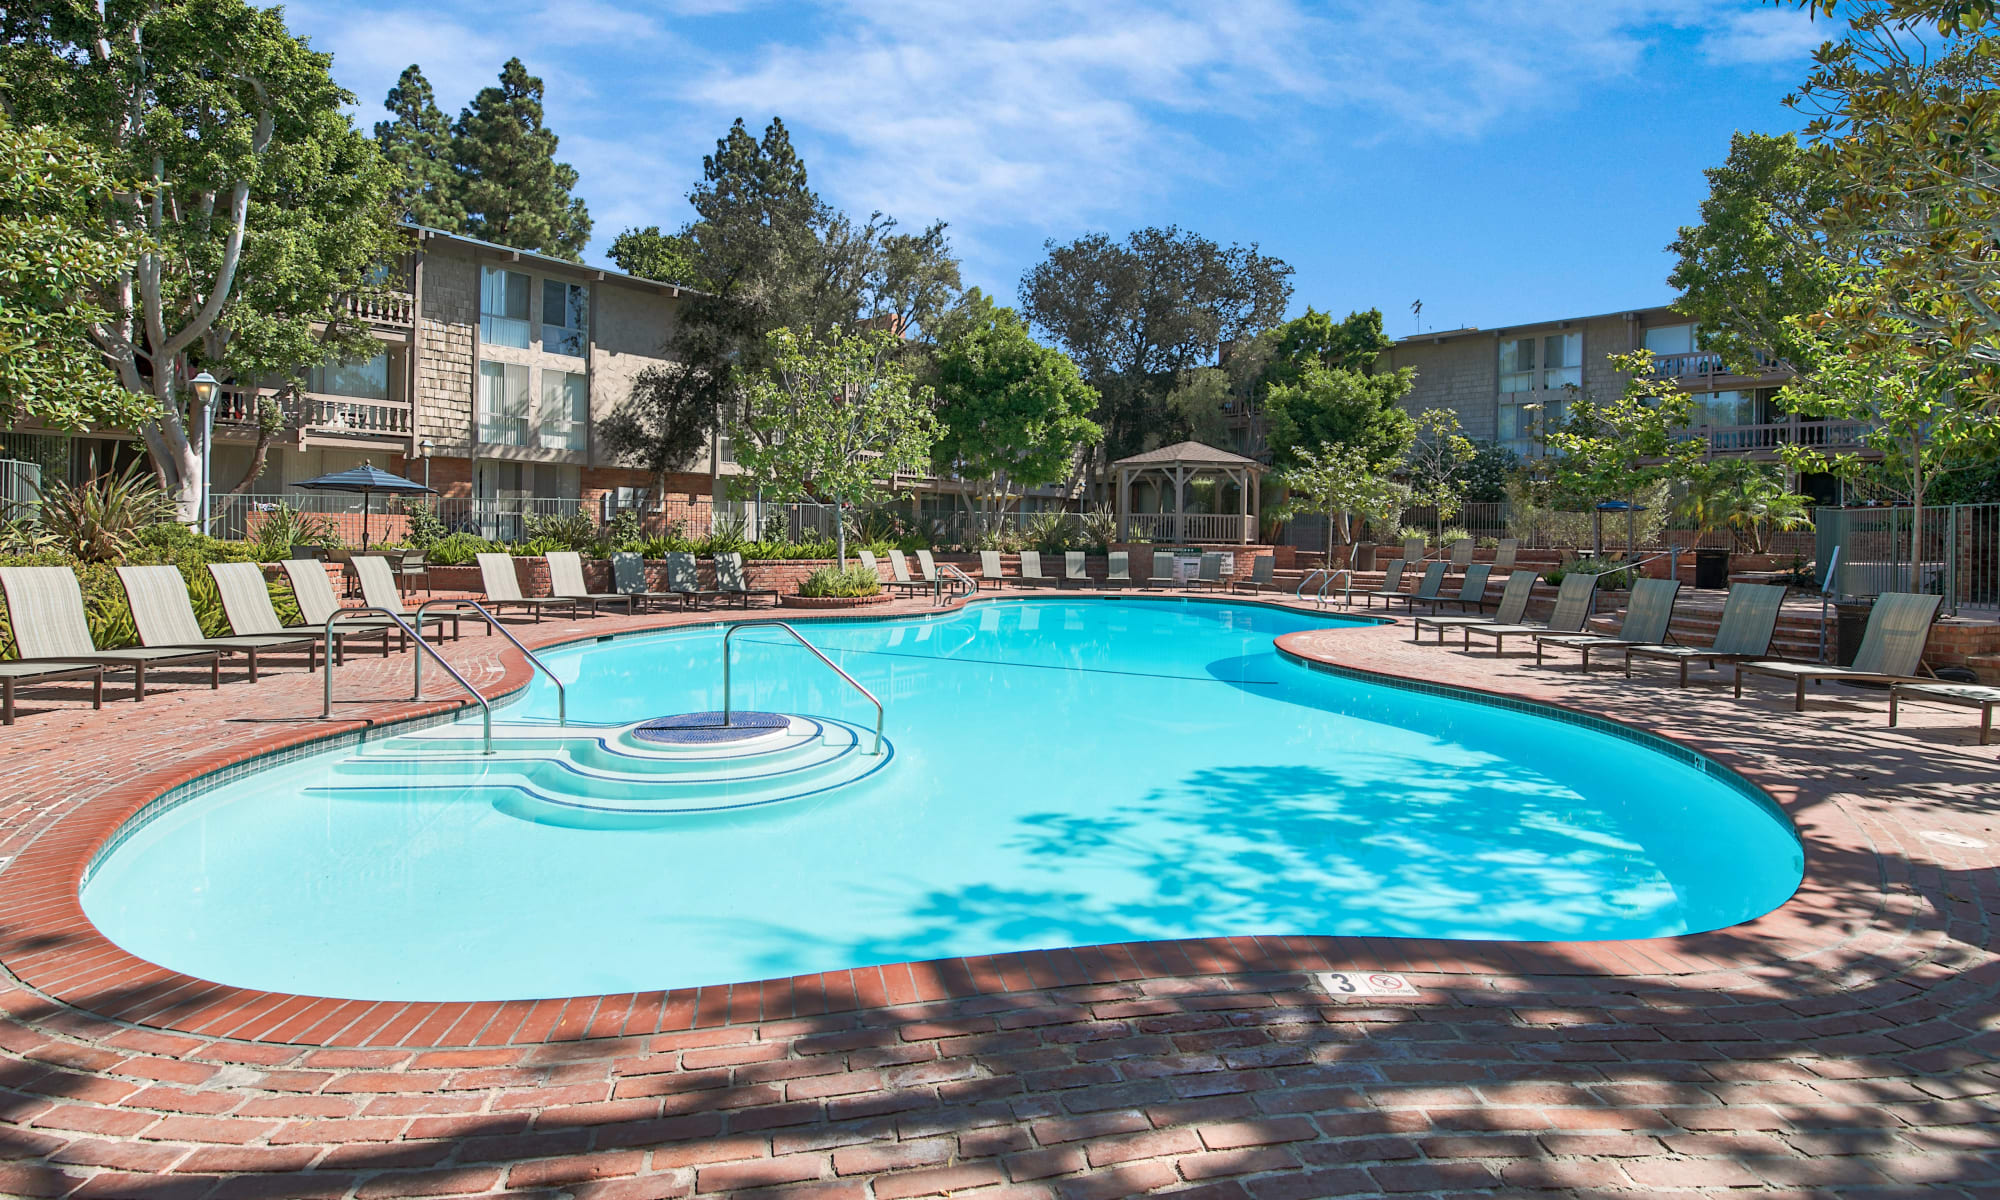 Large resort-style swimming pool at The Meadows in Culver City, California